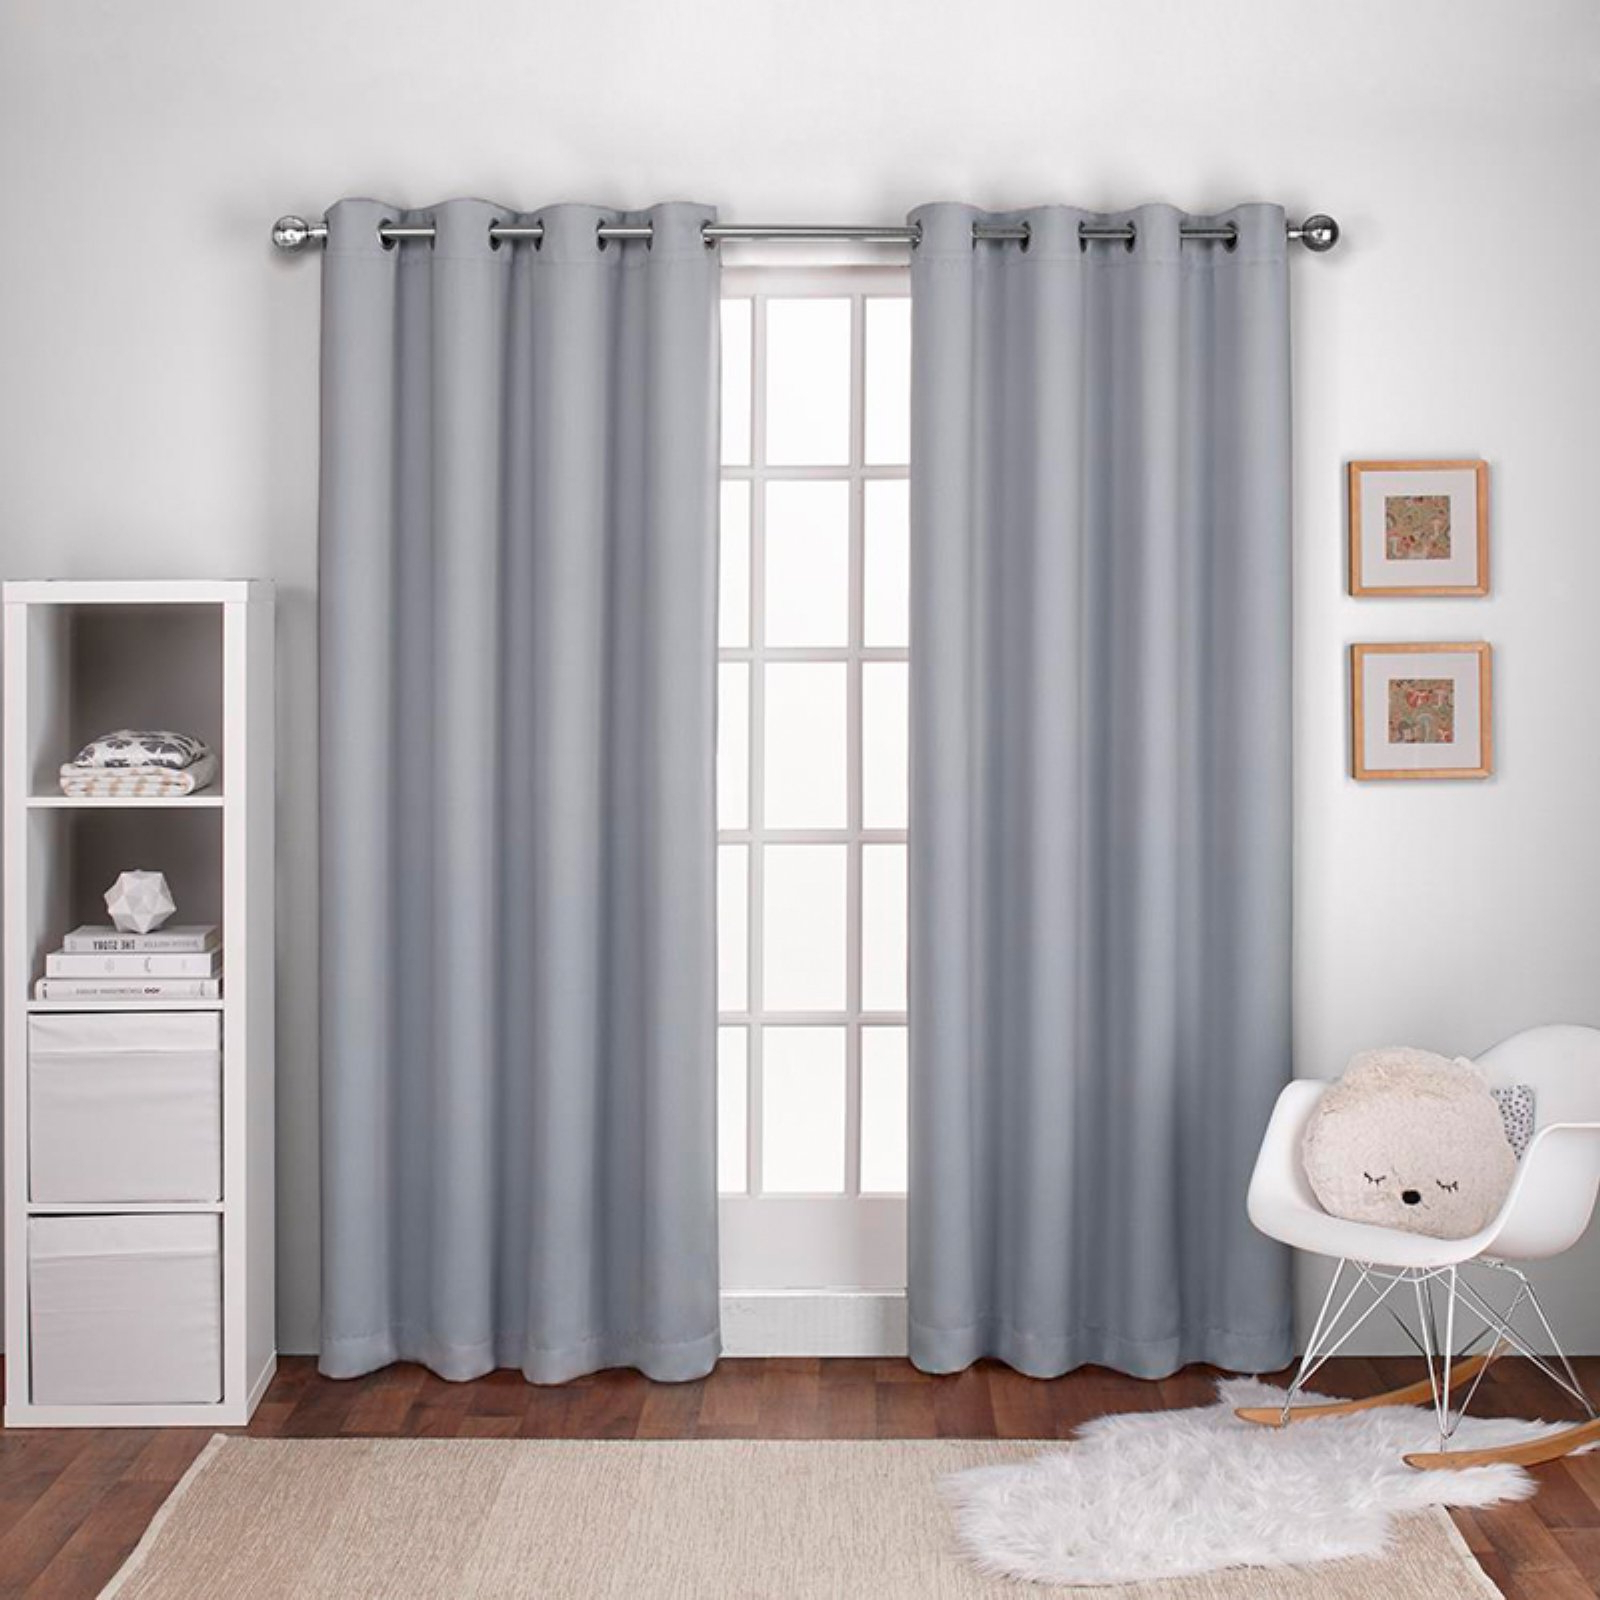 Woven Blackout Curtain Panel Pairs With Grommet Top For 2021 Exclusive Home Textured Woven Blackout Window Curtain Panel Pair With  Grommet Top (View 7 of 20)